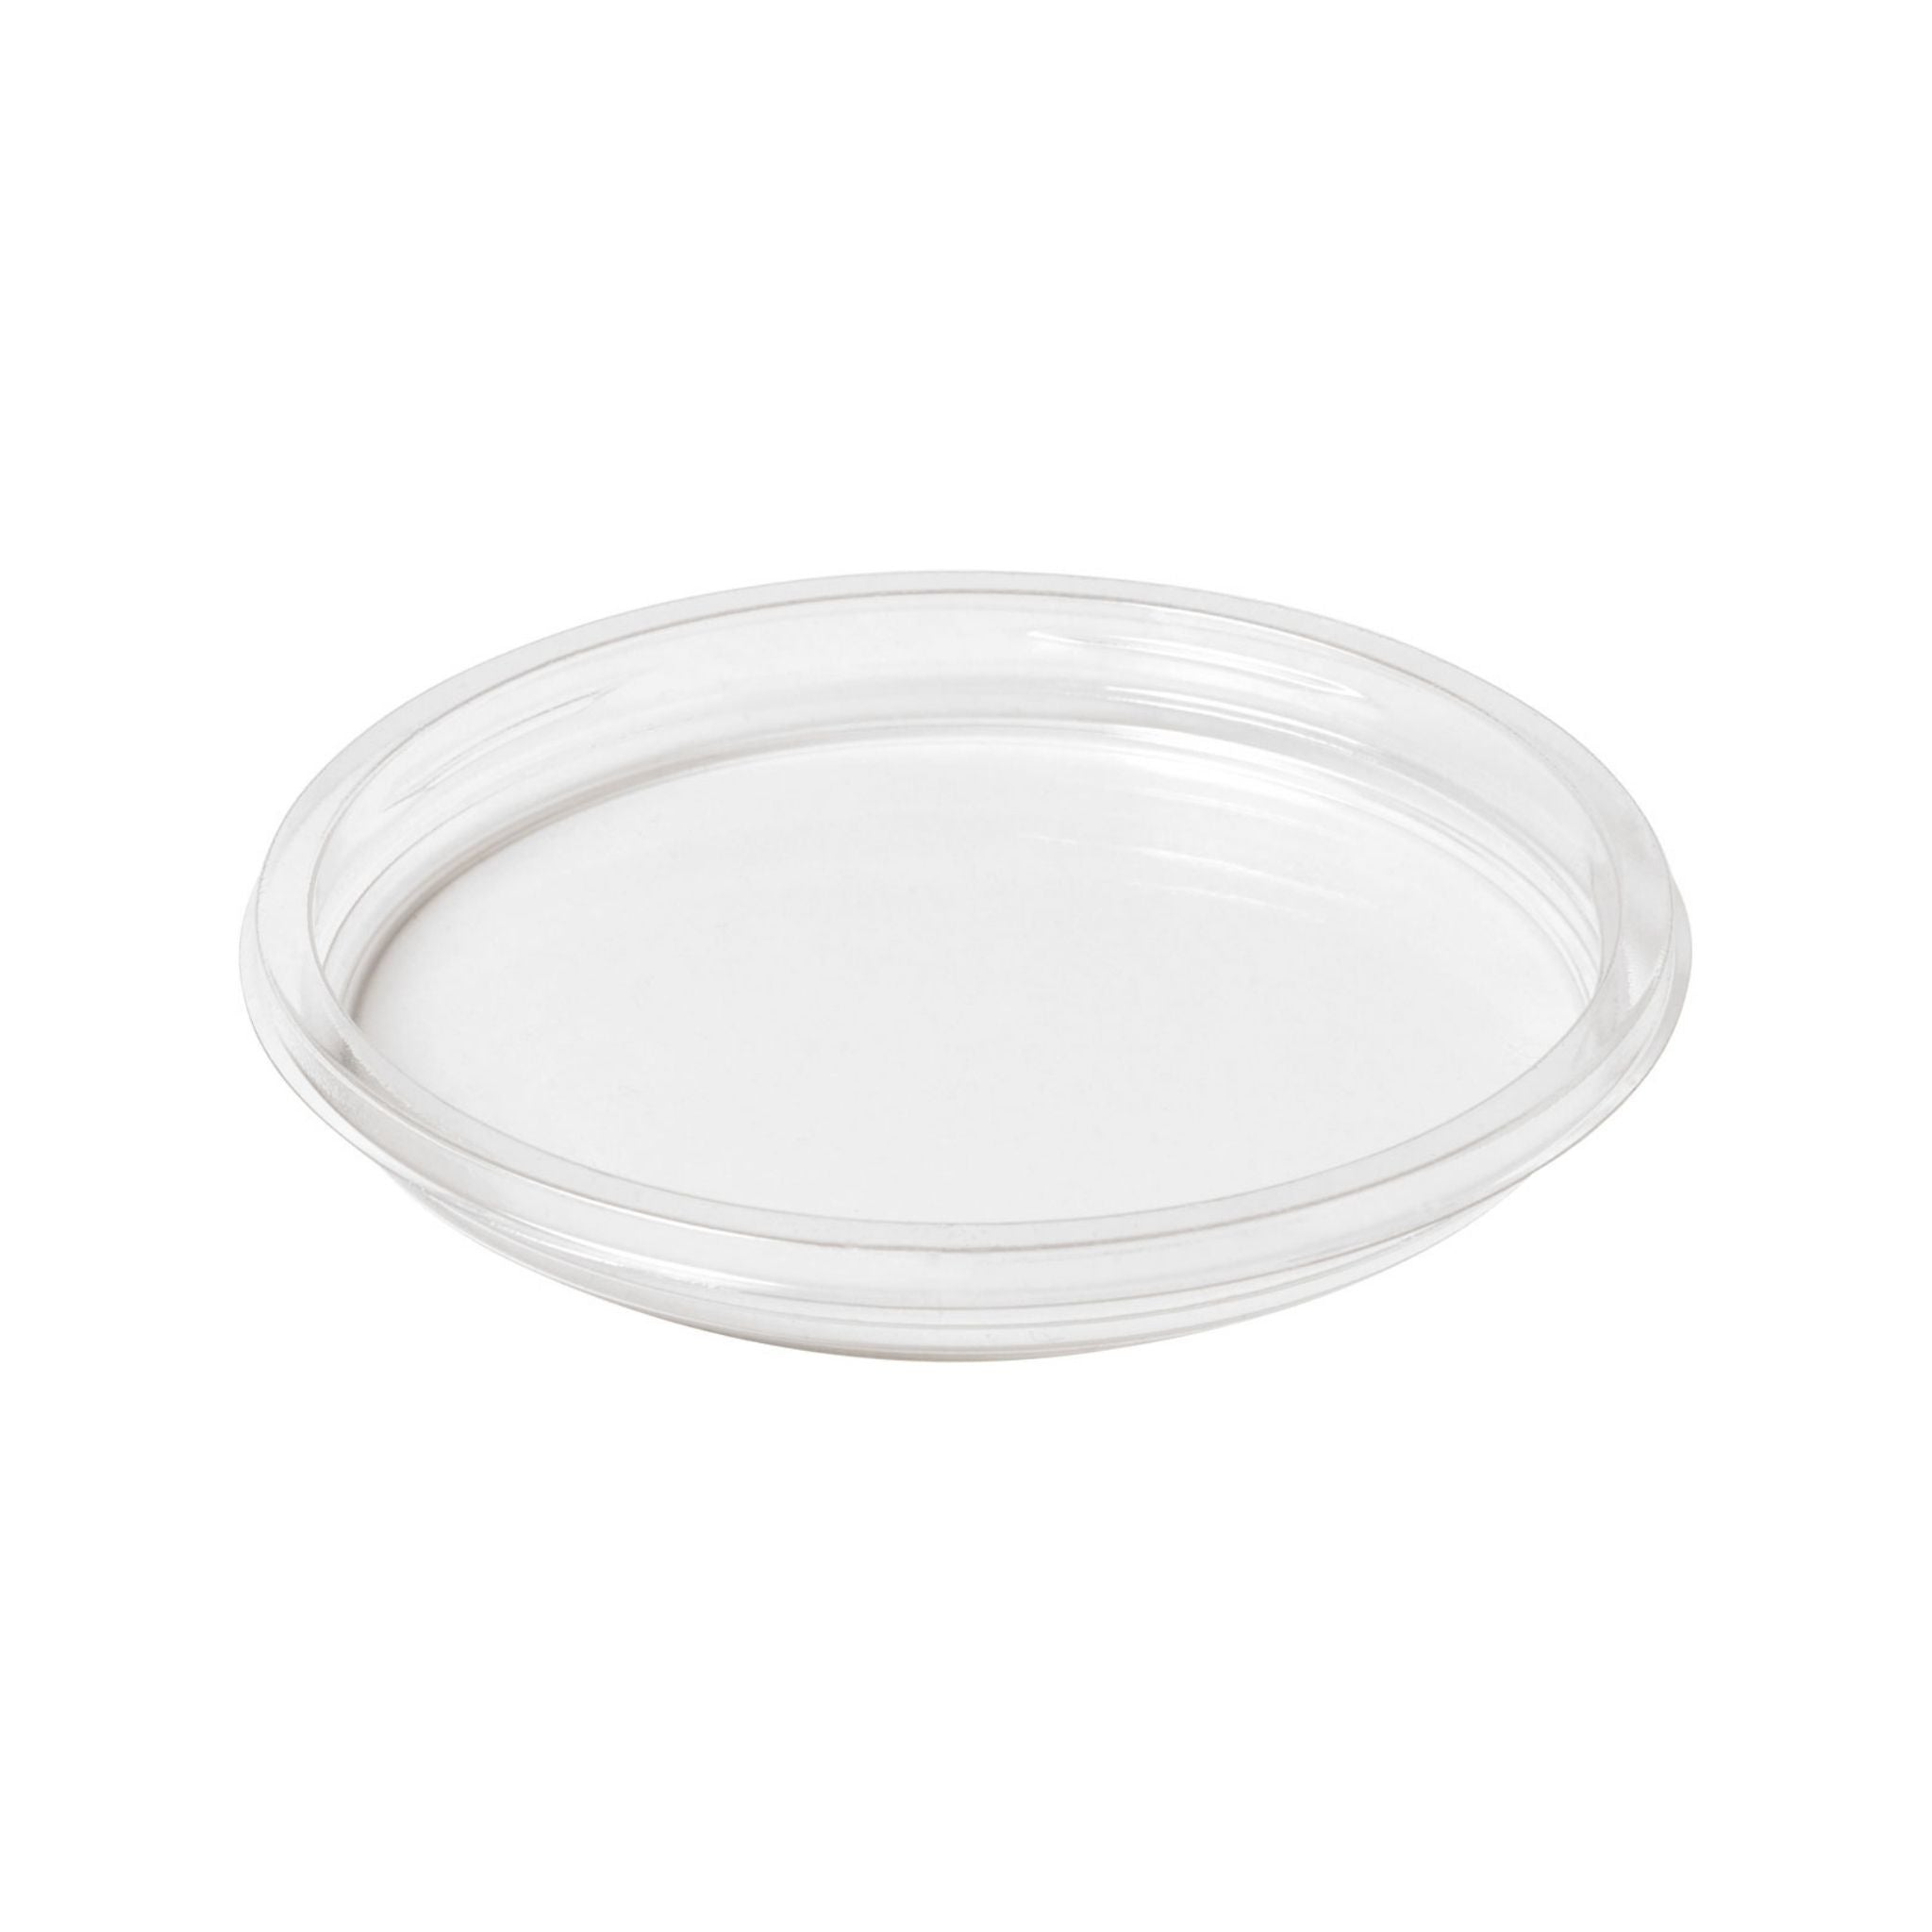 Crystal Deli rasian (250/375ml) kansi rPET,   Ø120mm